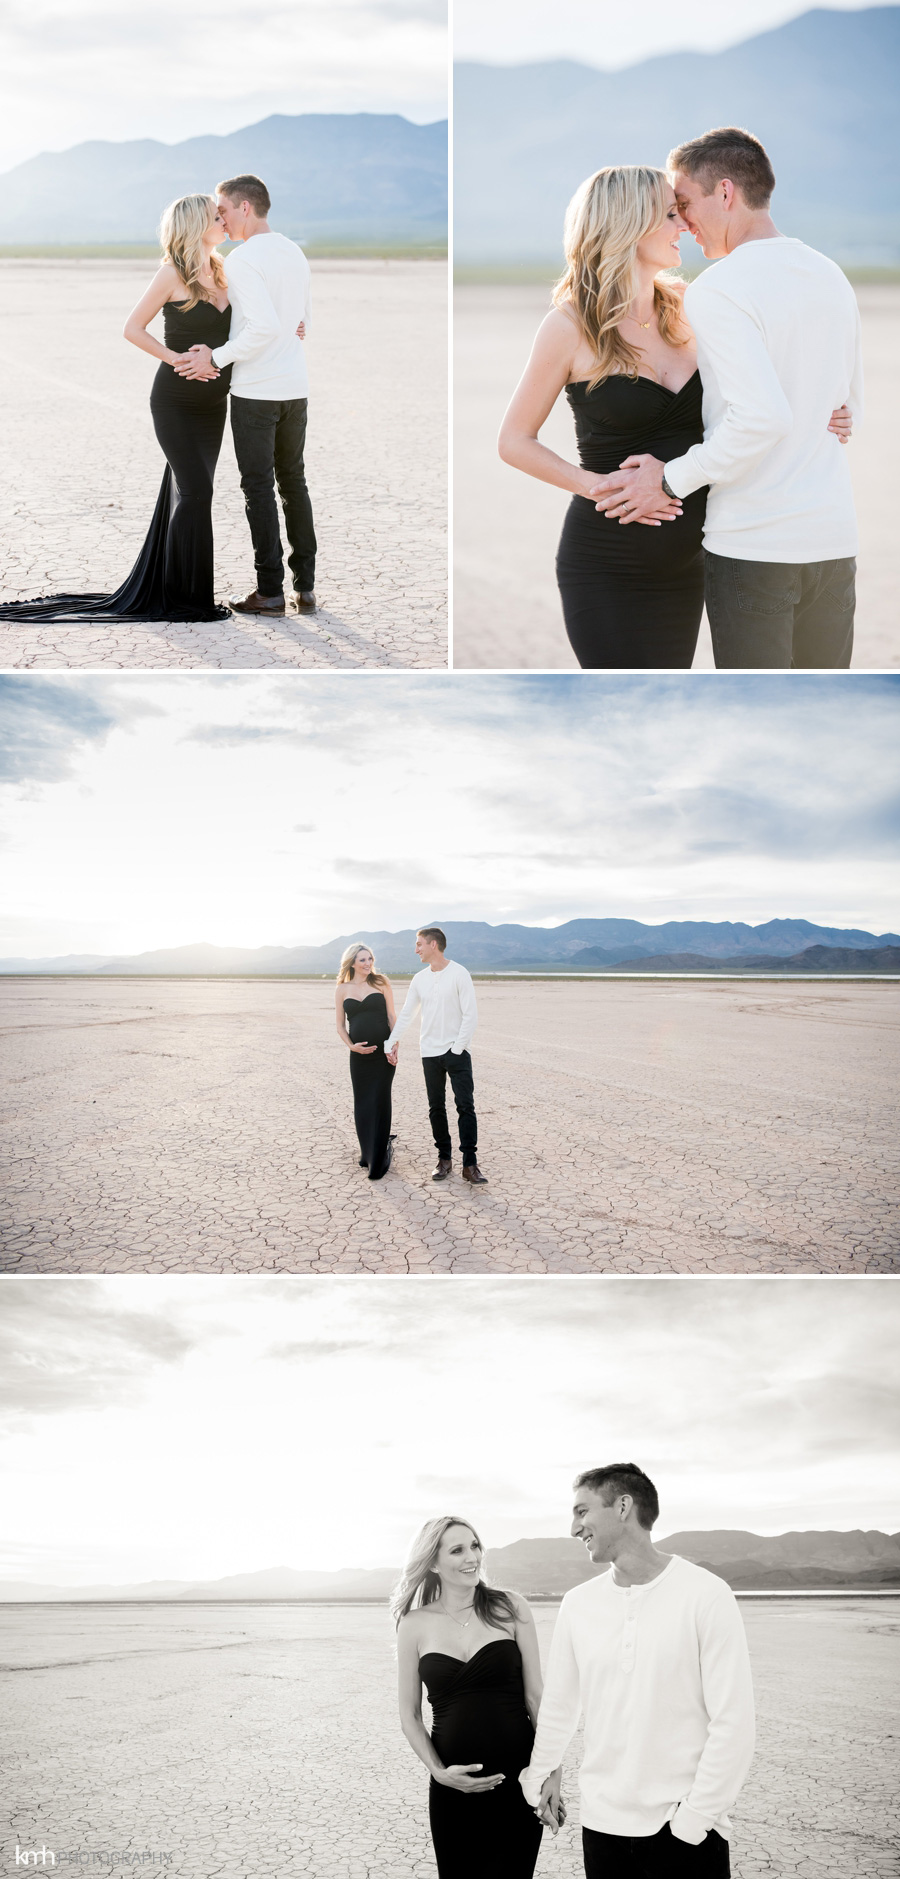 Las Vegas Dry Lake Bed Maternity Session | KMH Photography | Las Vegas Portrait Photographer